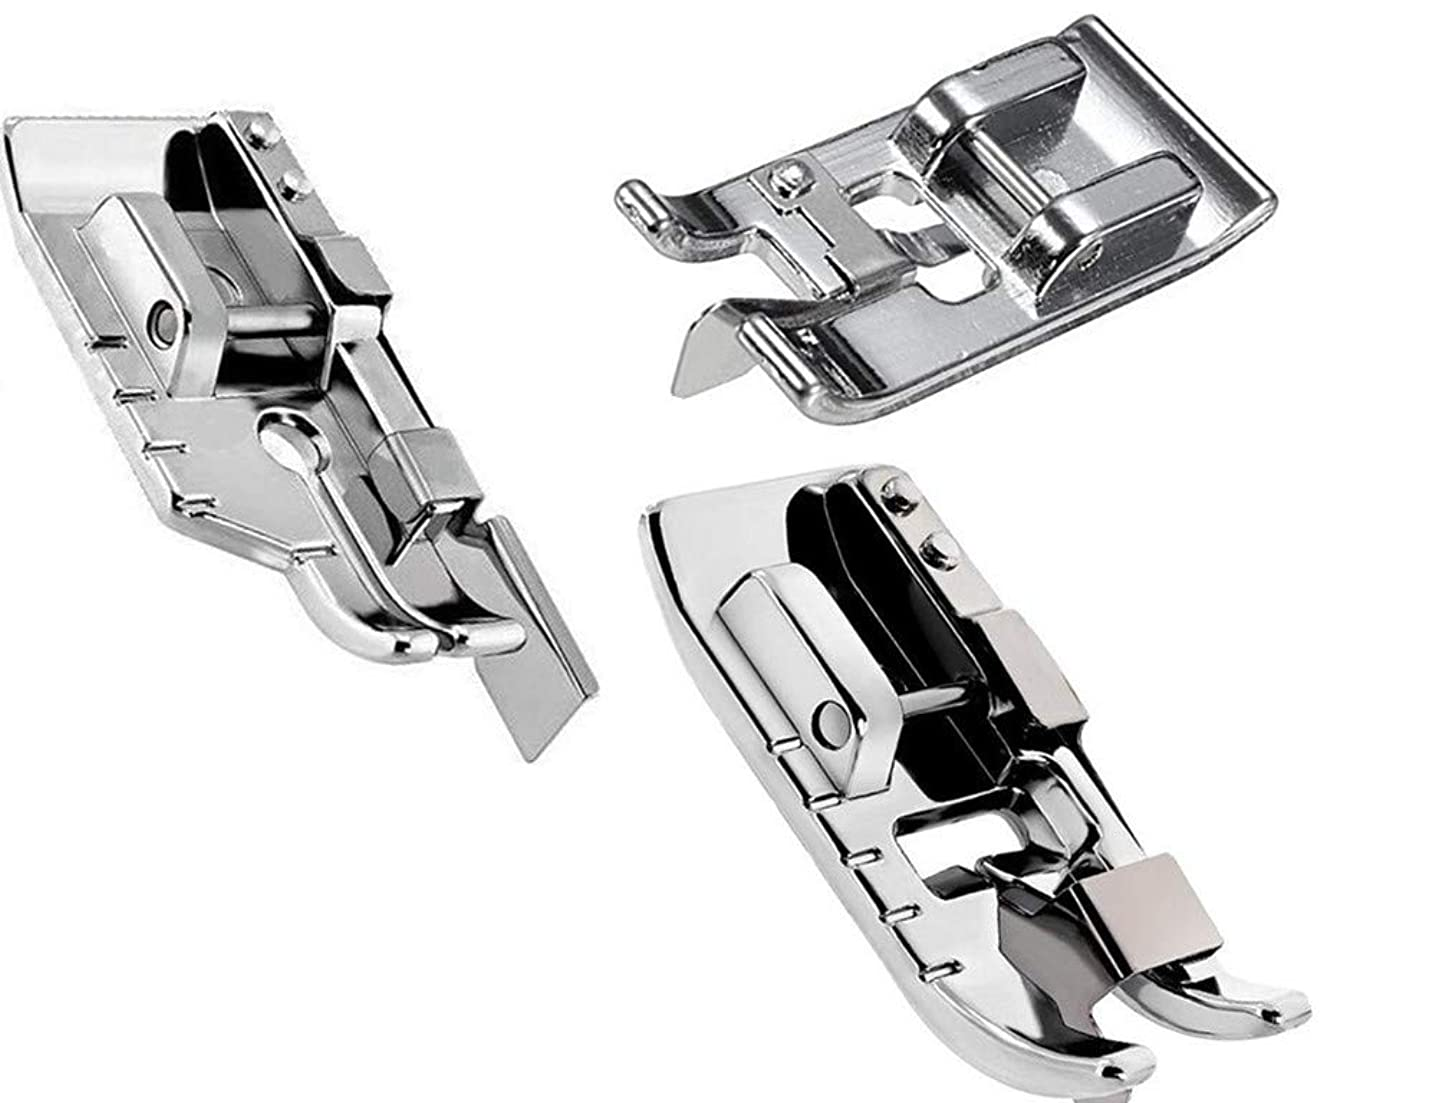 Pack of 1/4''(Quarter inch) Quilting Patchwork Sewing Machine Presser Foot with Edge Guide,Stitch in Ditch Foot/Professional Overcast Presser Foot for All Low Shank Snap-On Singer, Brother